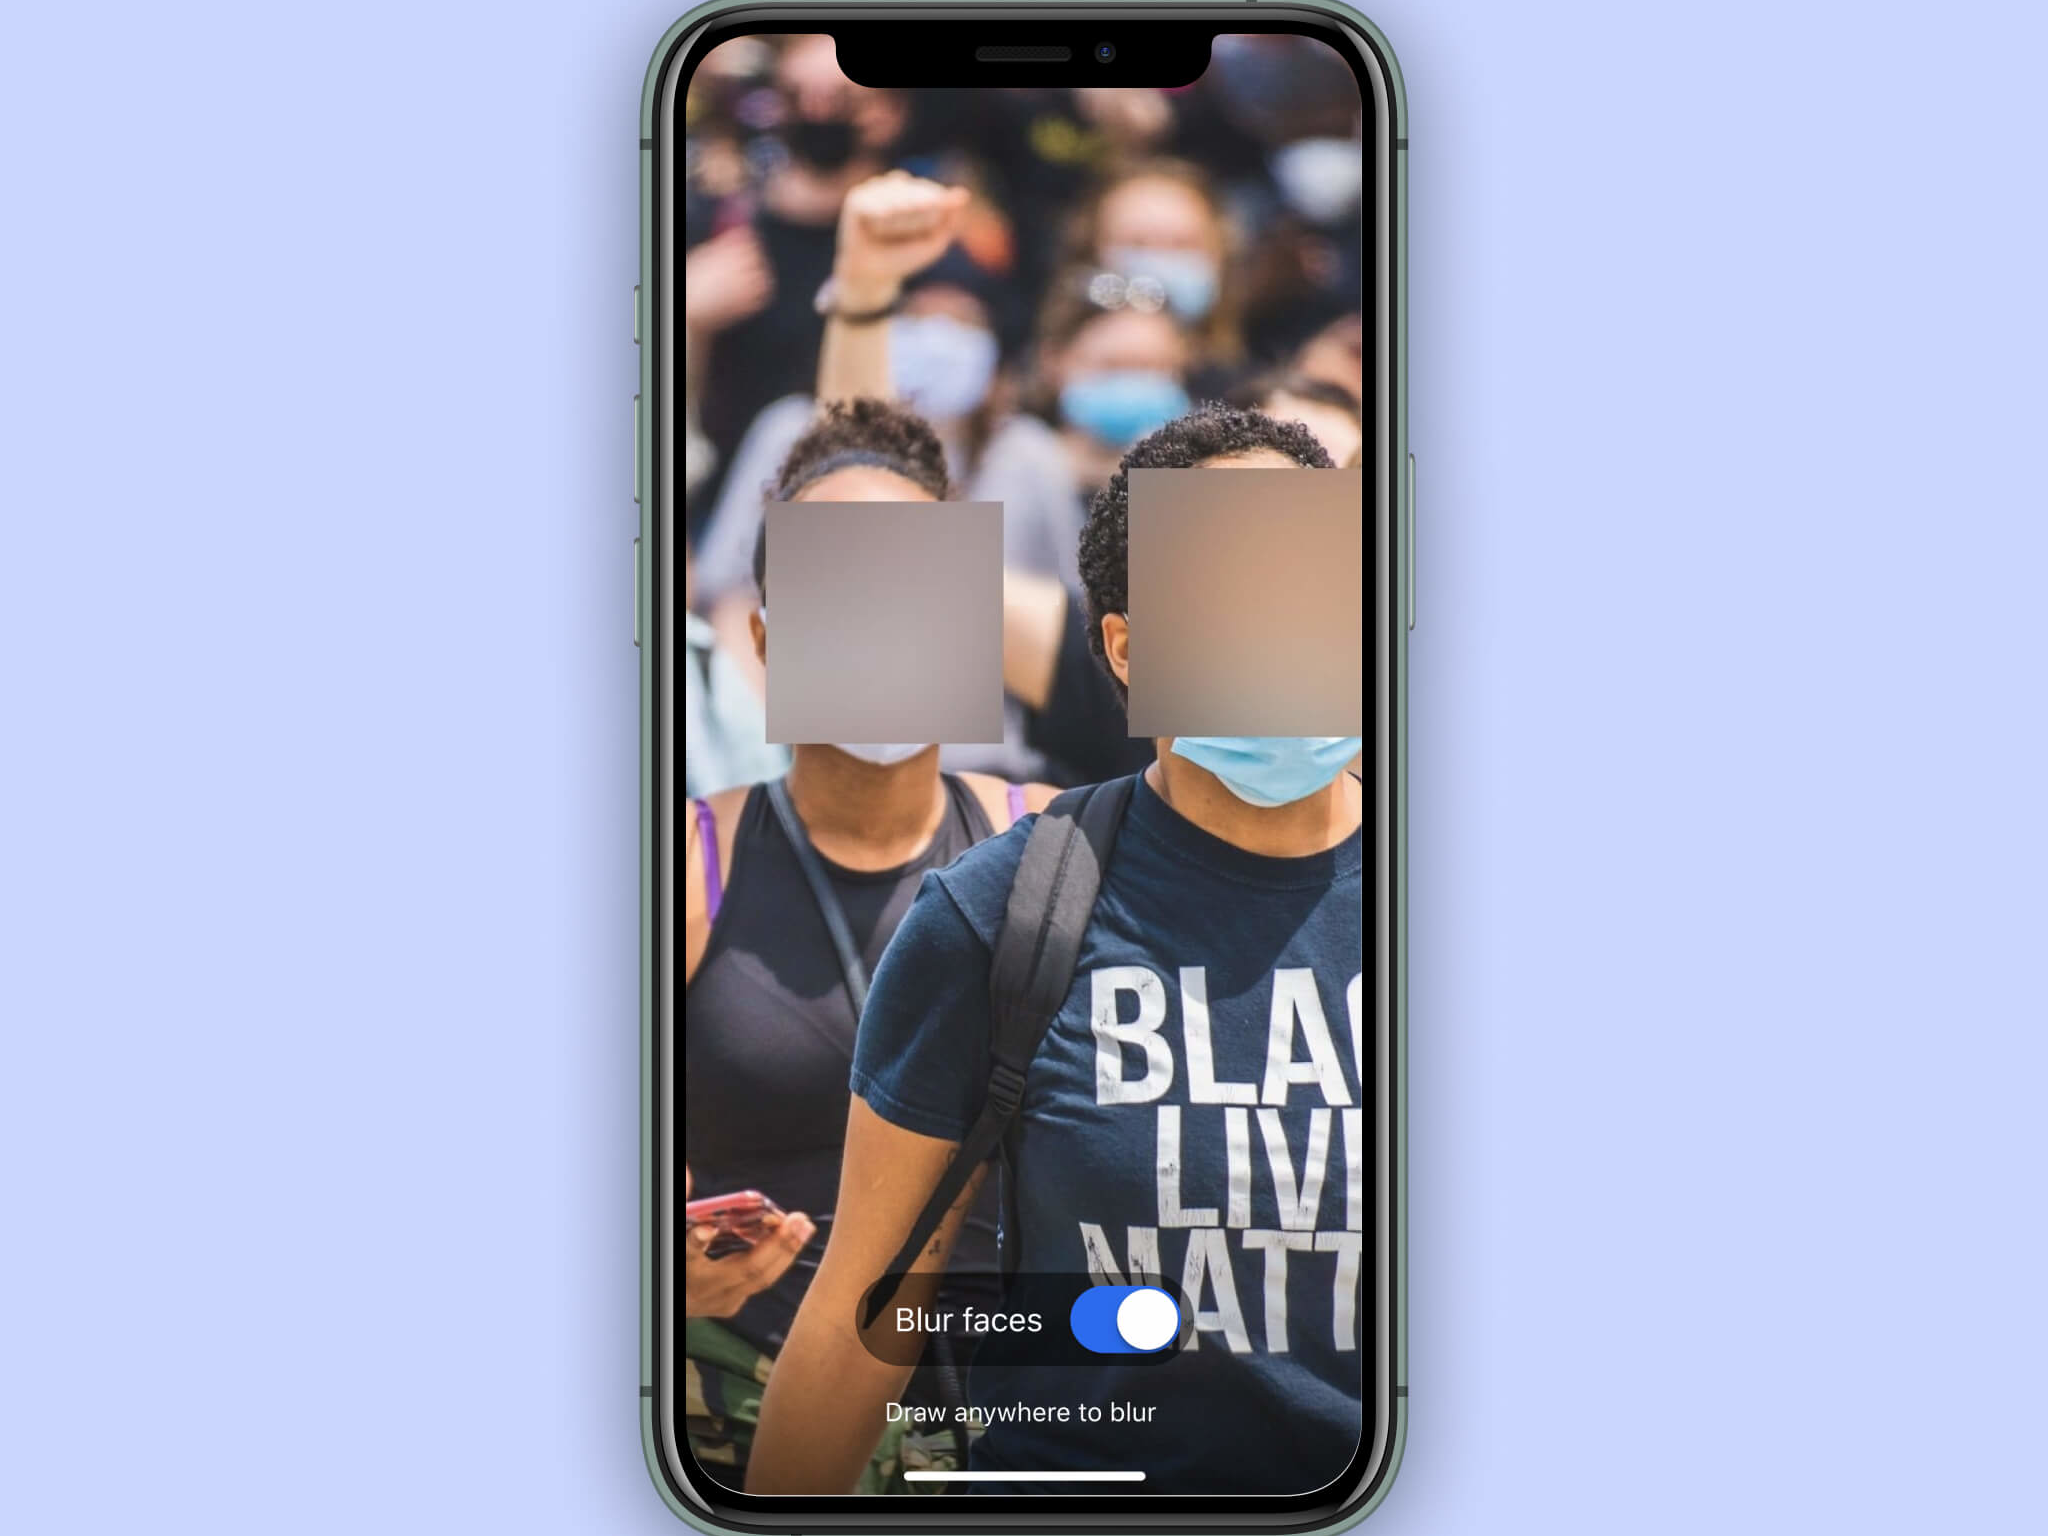 Signal app to introduce automatic face blurring in photos as US protests continue